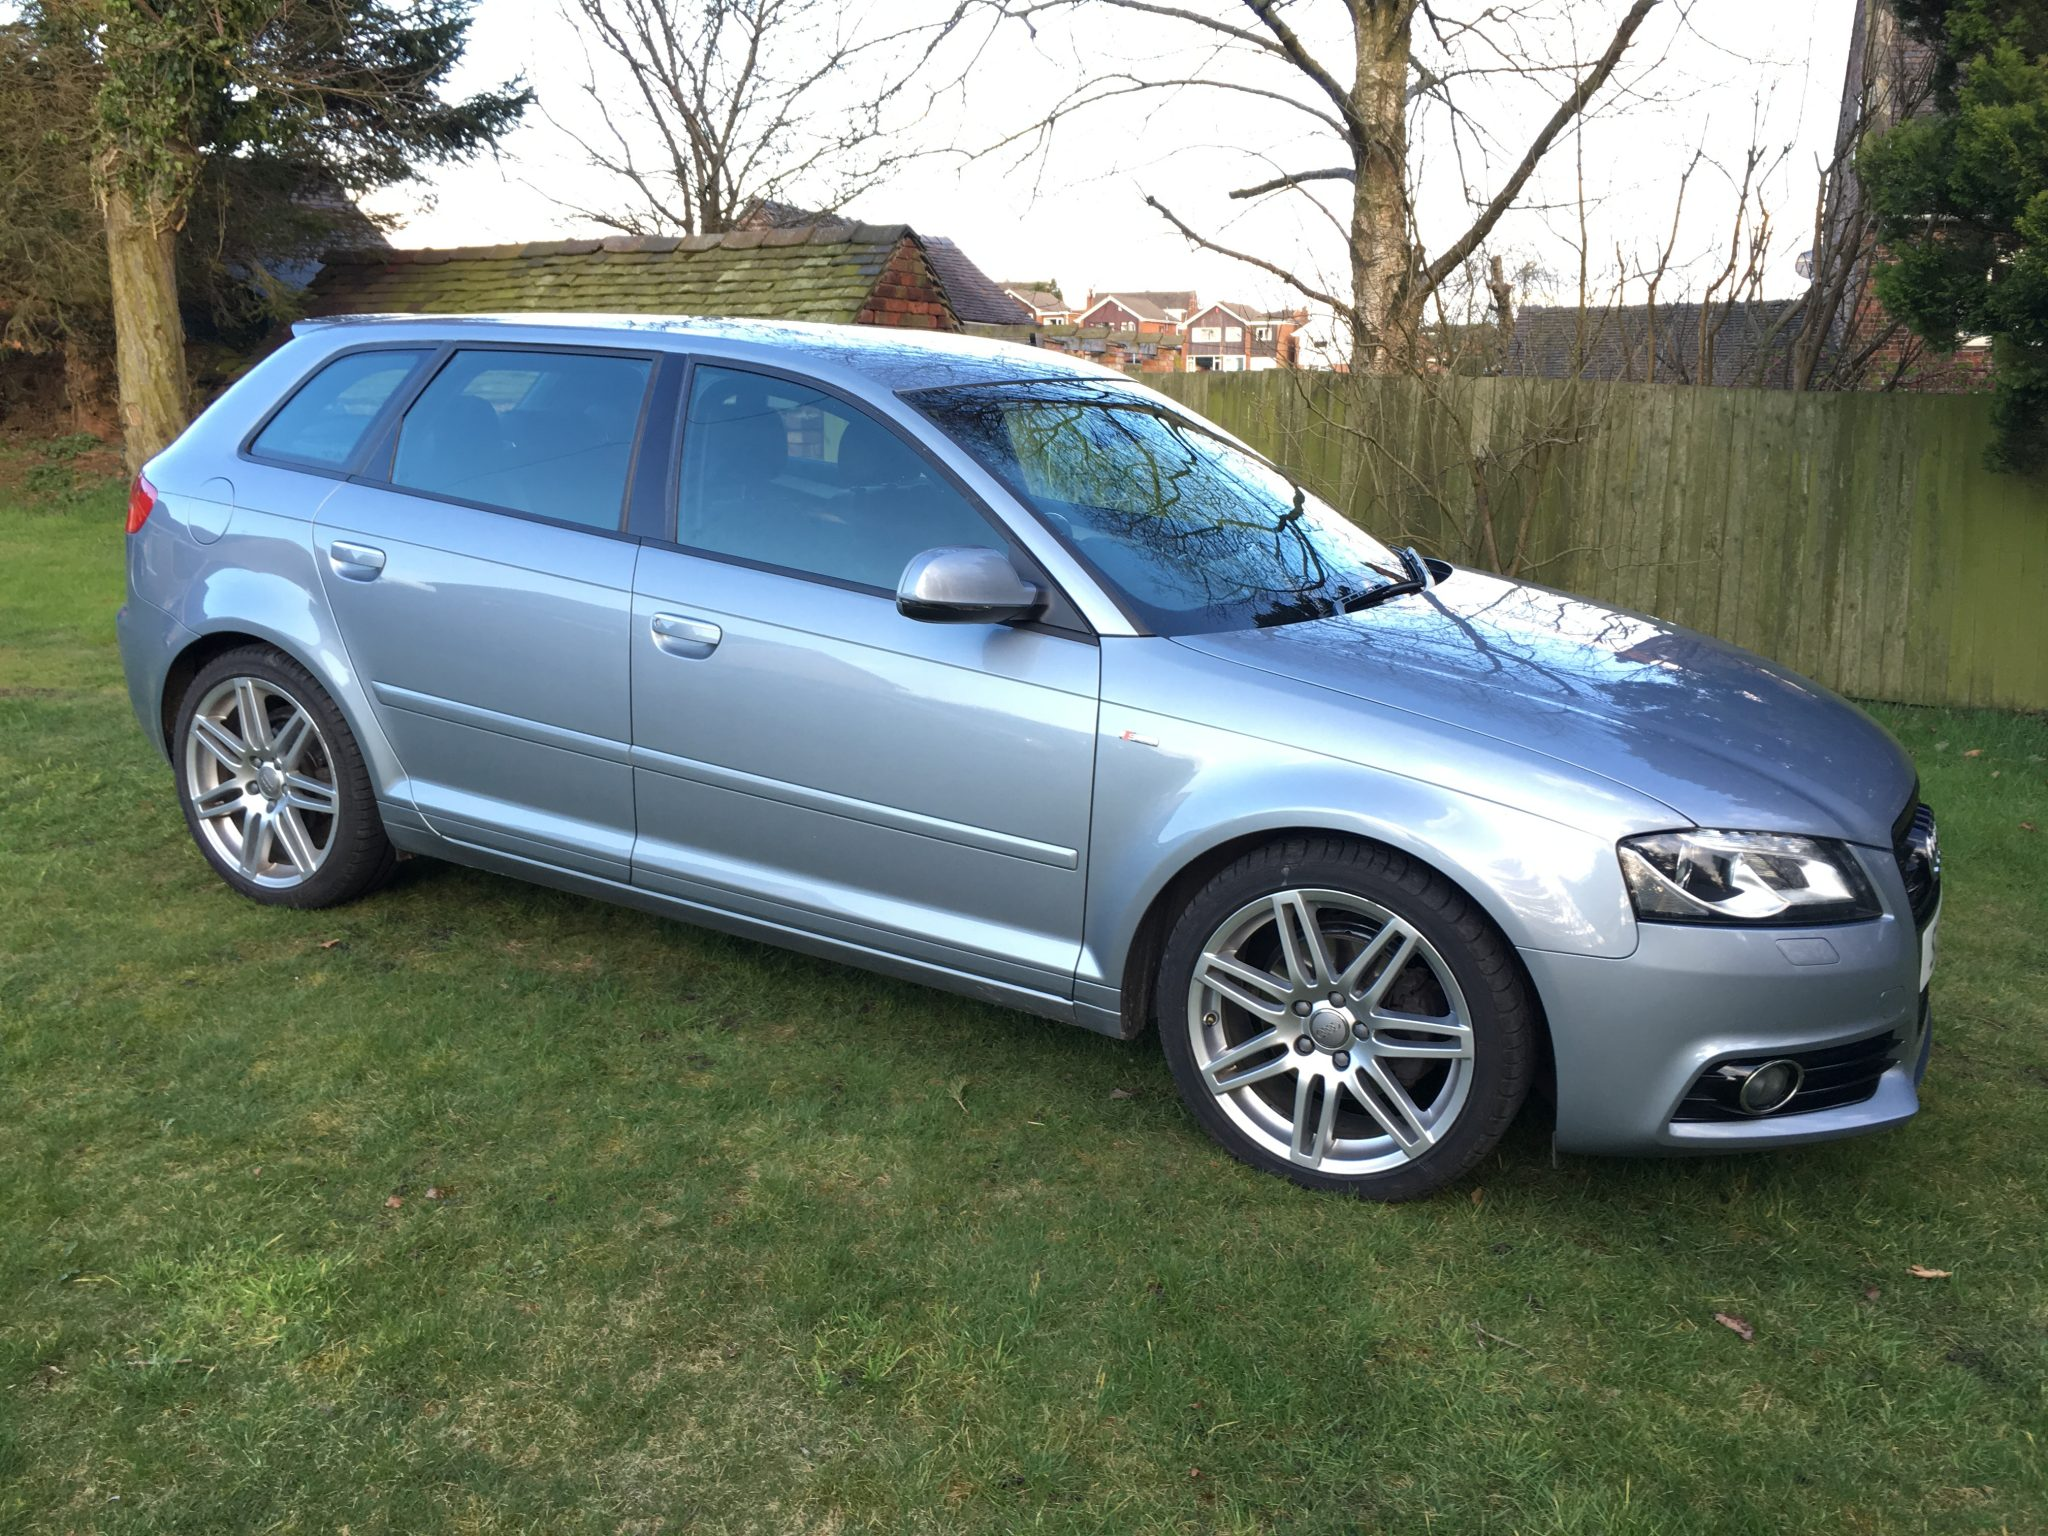 2011 audi a3 s line 2 0 tdi sportback 5 door full leather. Black Bedroom Furniture Sets. Home Design Ideas